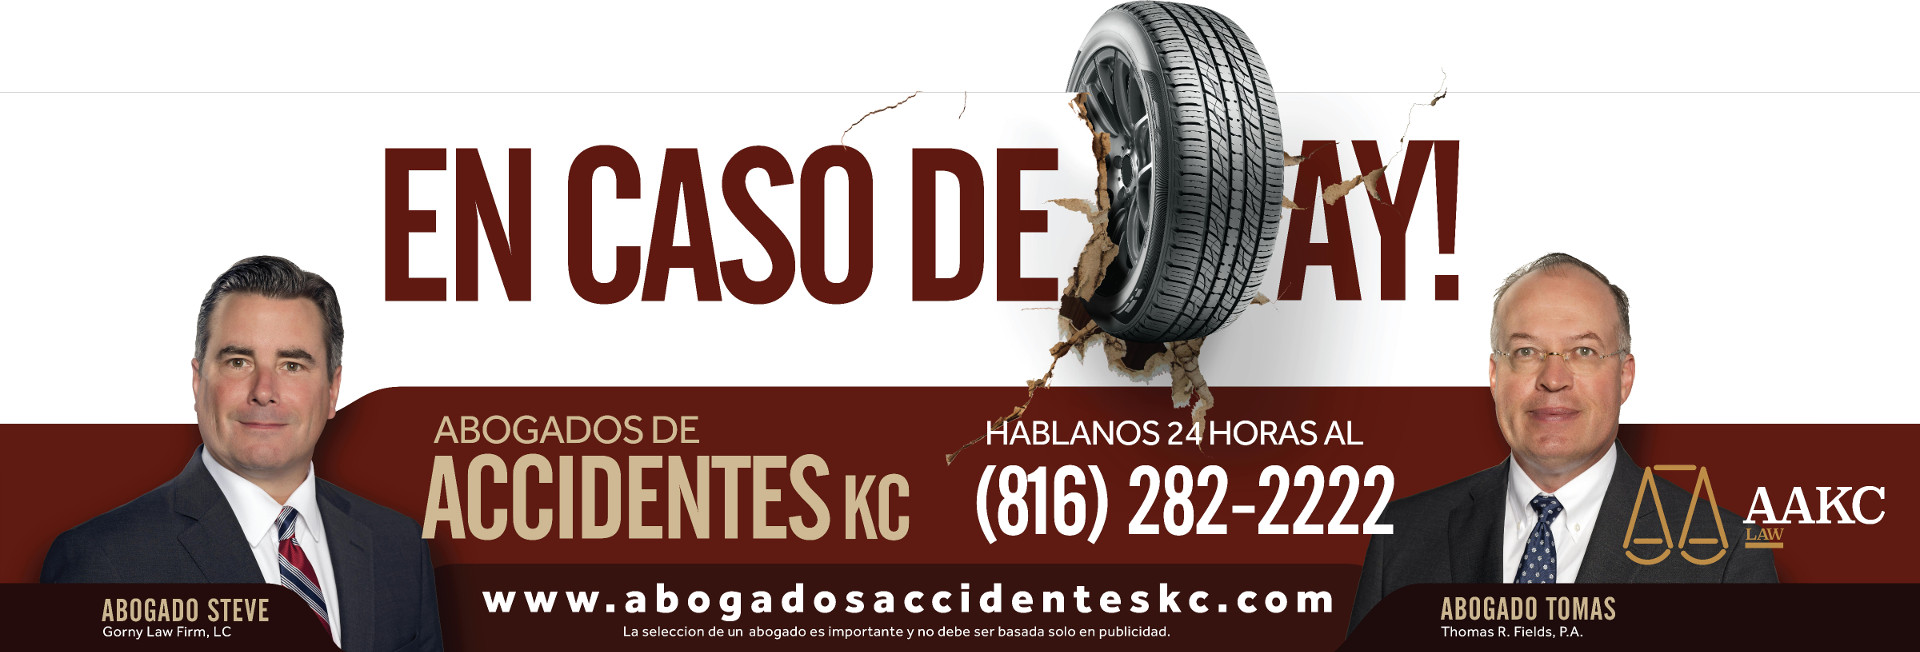 Abogados Accidentes de Kansas City Banner